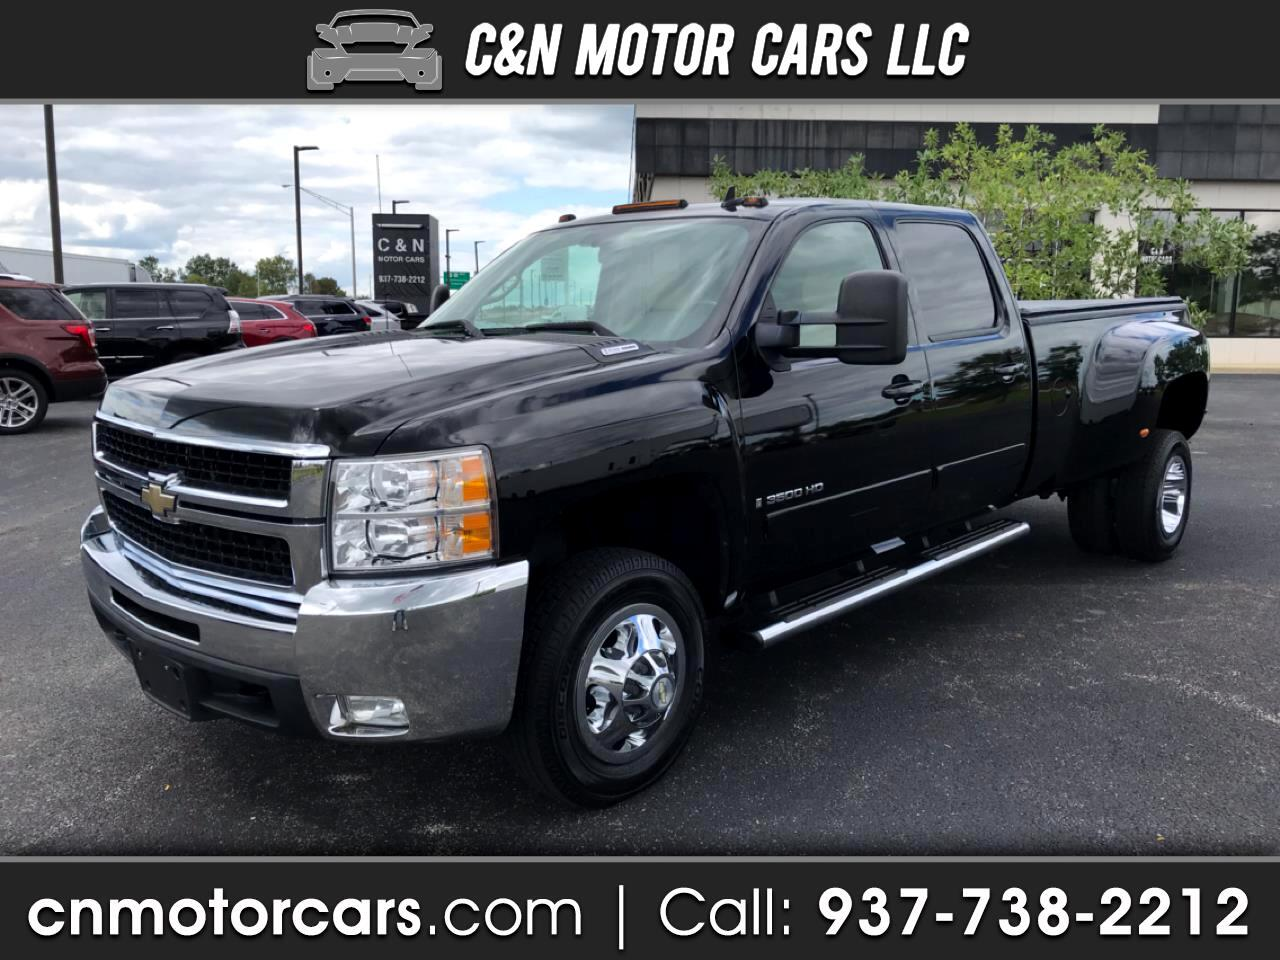 2008 Chevrolet Silverado 3500HD LTZ Crew Cab Long Box 4WD